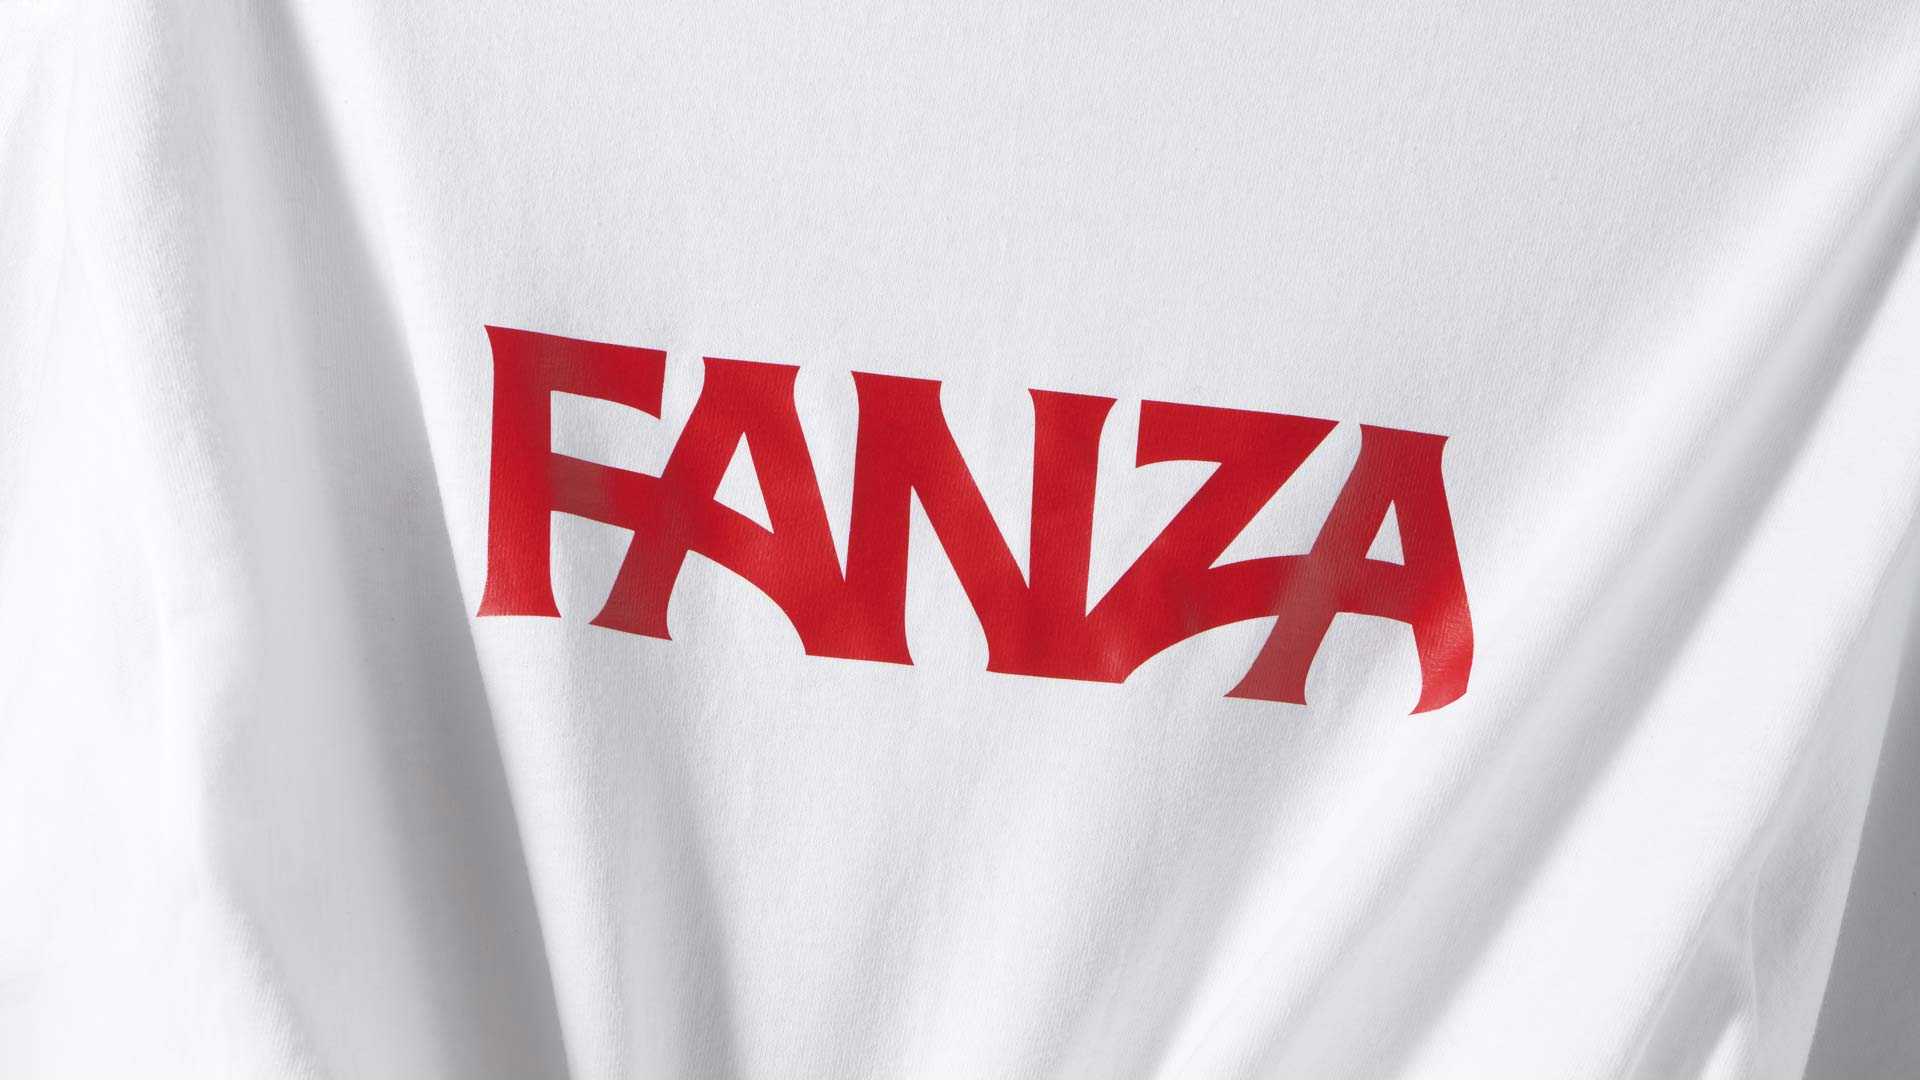 the letters Fanza in red letters